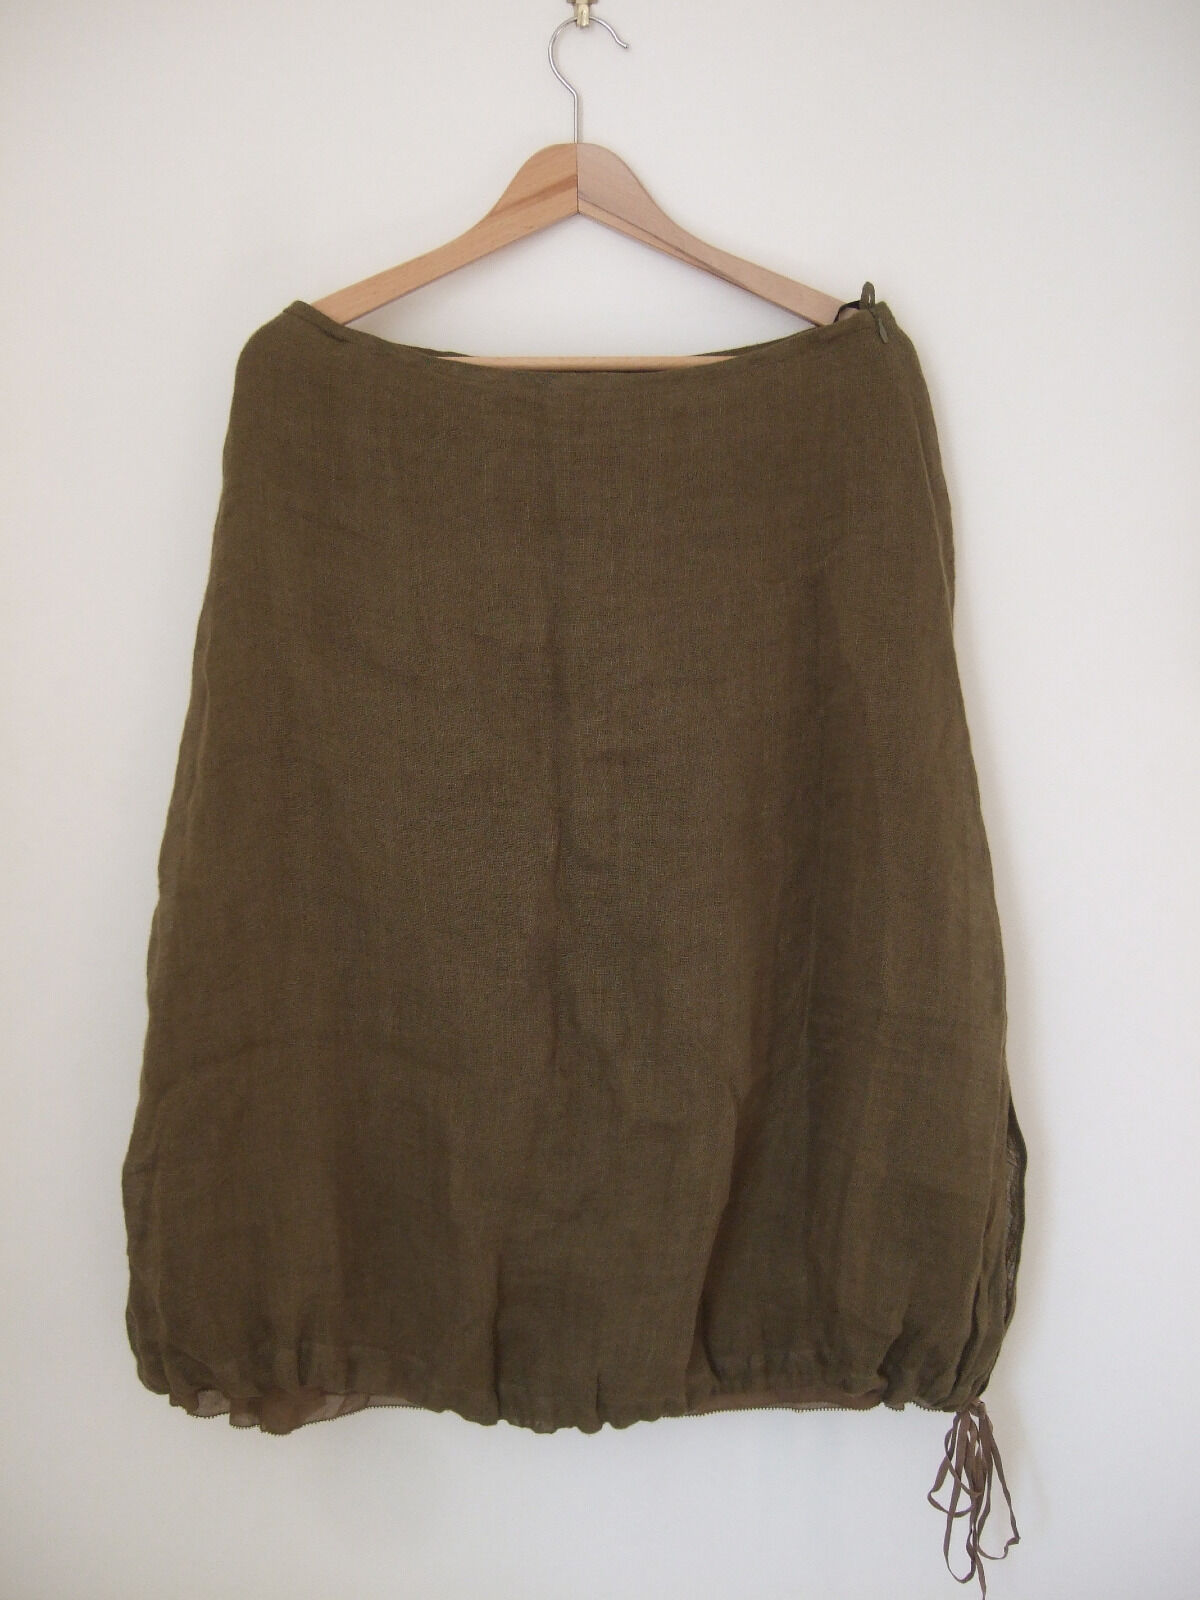 Designer Eileen Fisher Lined Skirt Size S Calf length % Linen